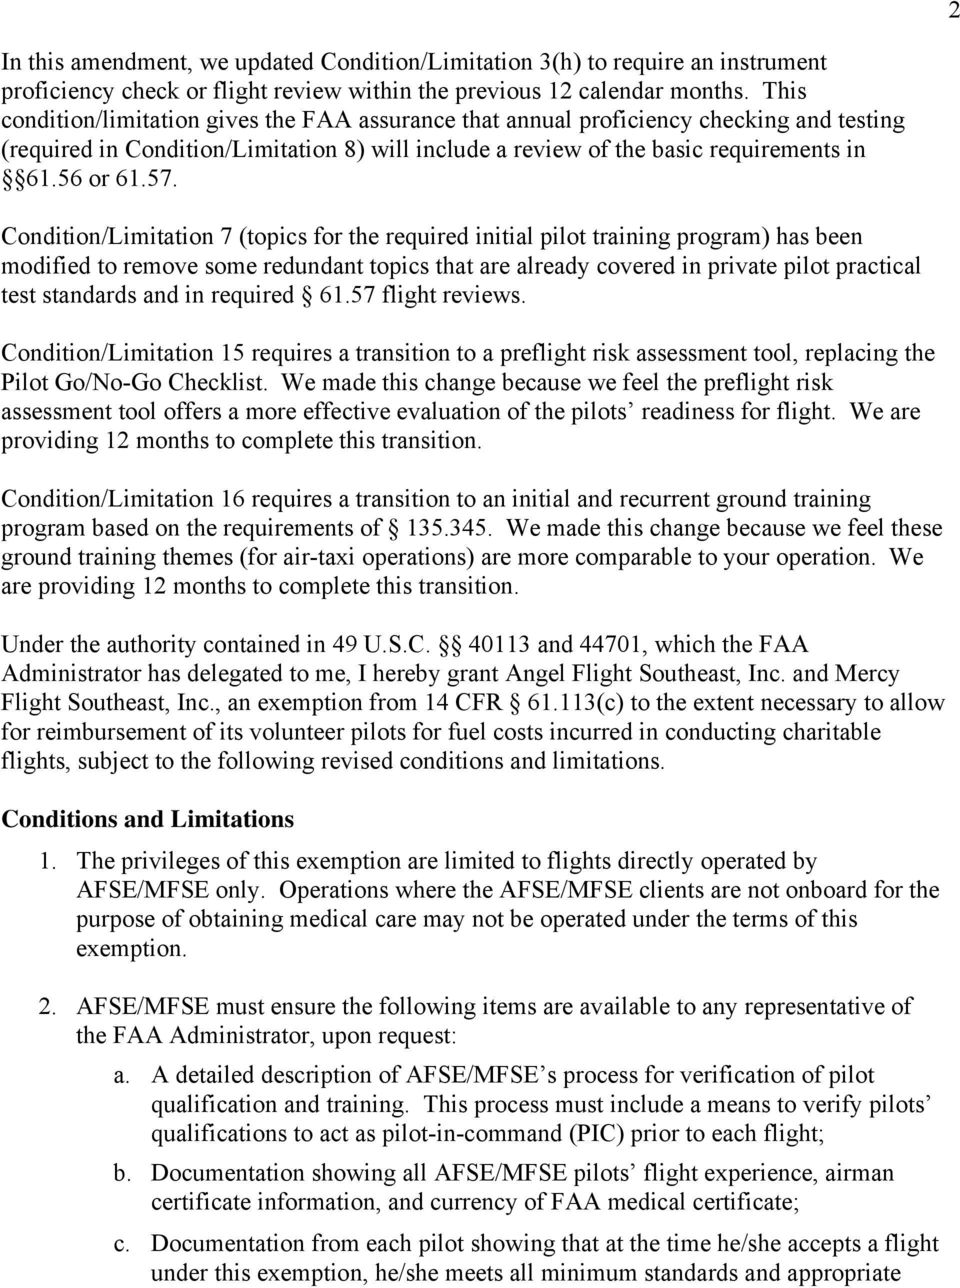 Condition/Limitation 7 (topics for the required initial pilot training program) has been modified to remove some redundant topics that are already covered in private pilot practical test standards